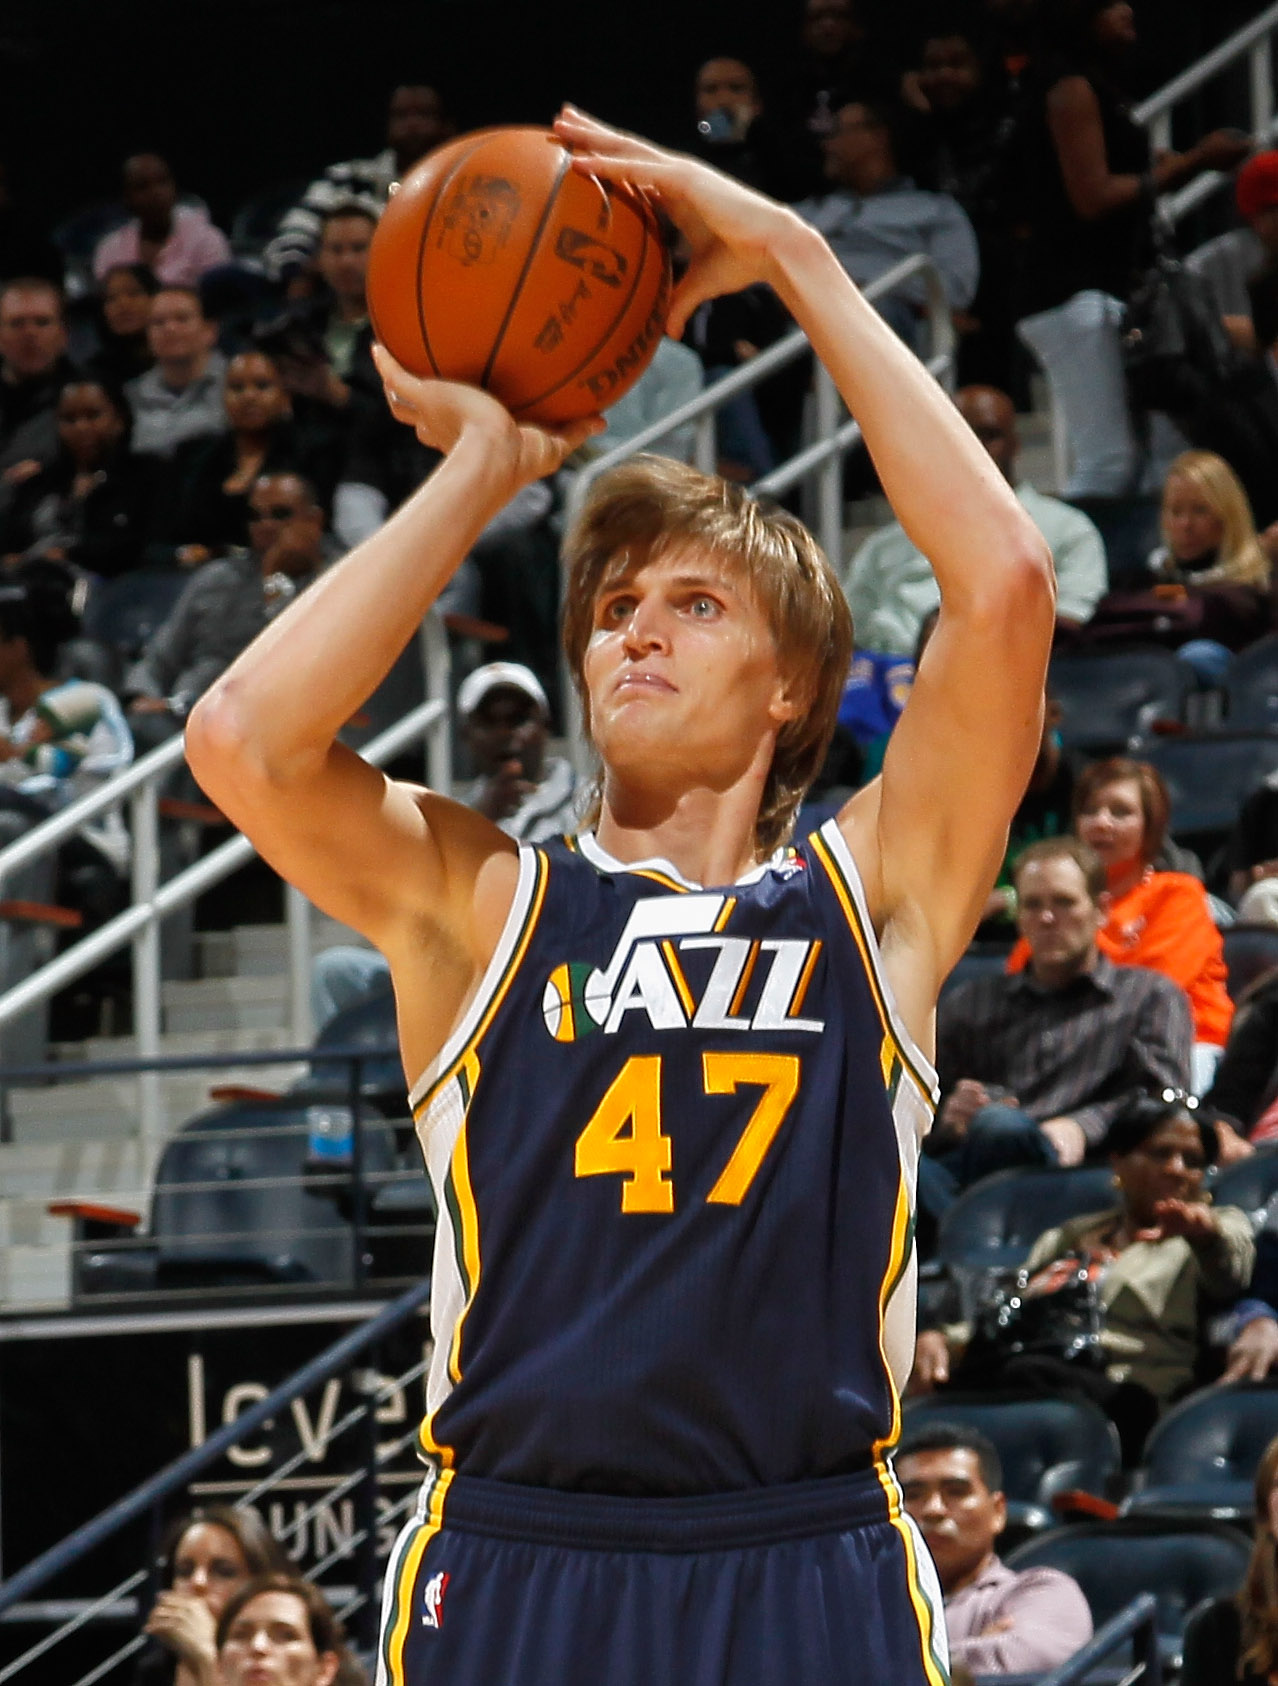 ATLANTA - NOVEMBER 12:  Andrei Kirilenko #47 of the Utah Jazz shoots against the Atlanta Hawks at Philips Arena on November 12, 2010 in Atlanta, Georgia.  NOTE TO USER: User expressly acknowledges and agrees that, by downloading and/or using this Photogra